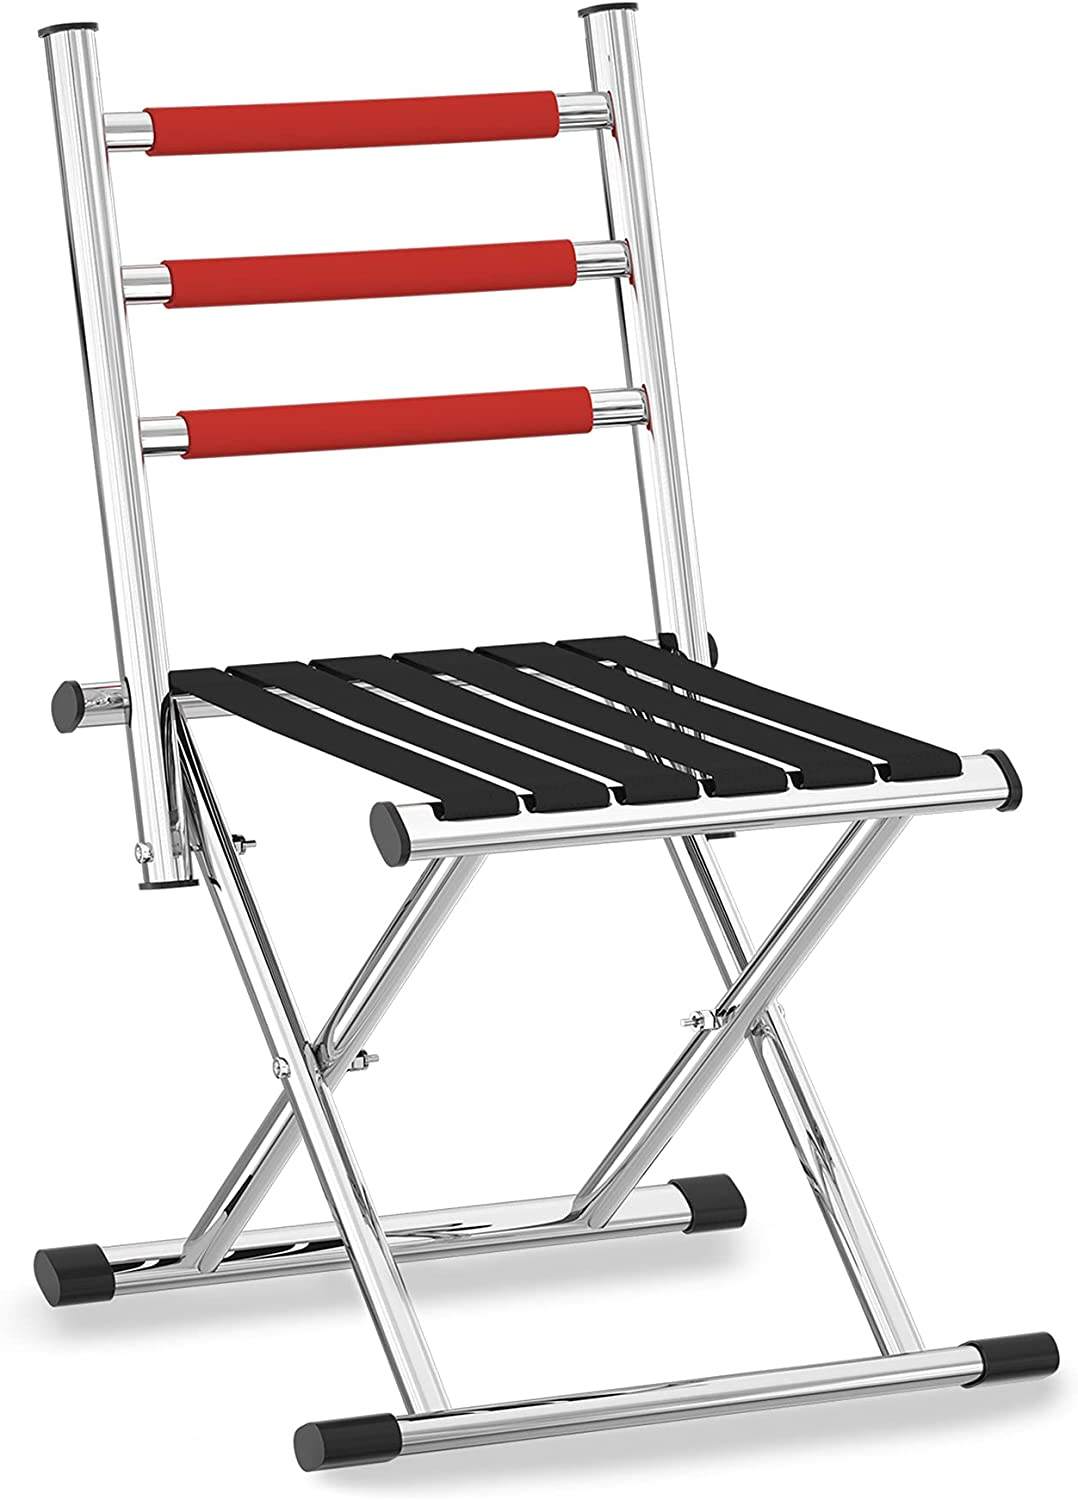 Portable Folding Camping Chair - with Foldable Hunting Seat Back Very popular! Fixed price for sale